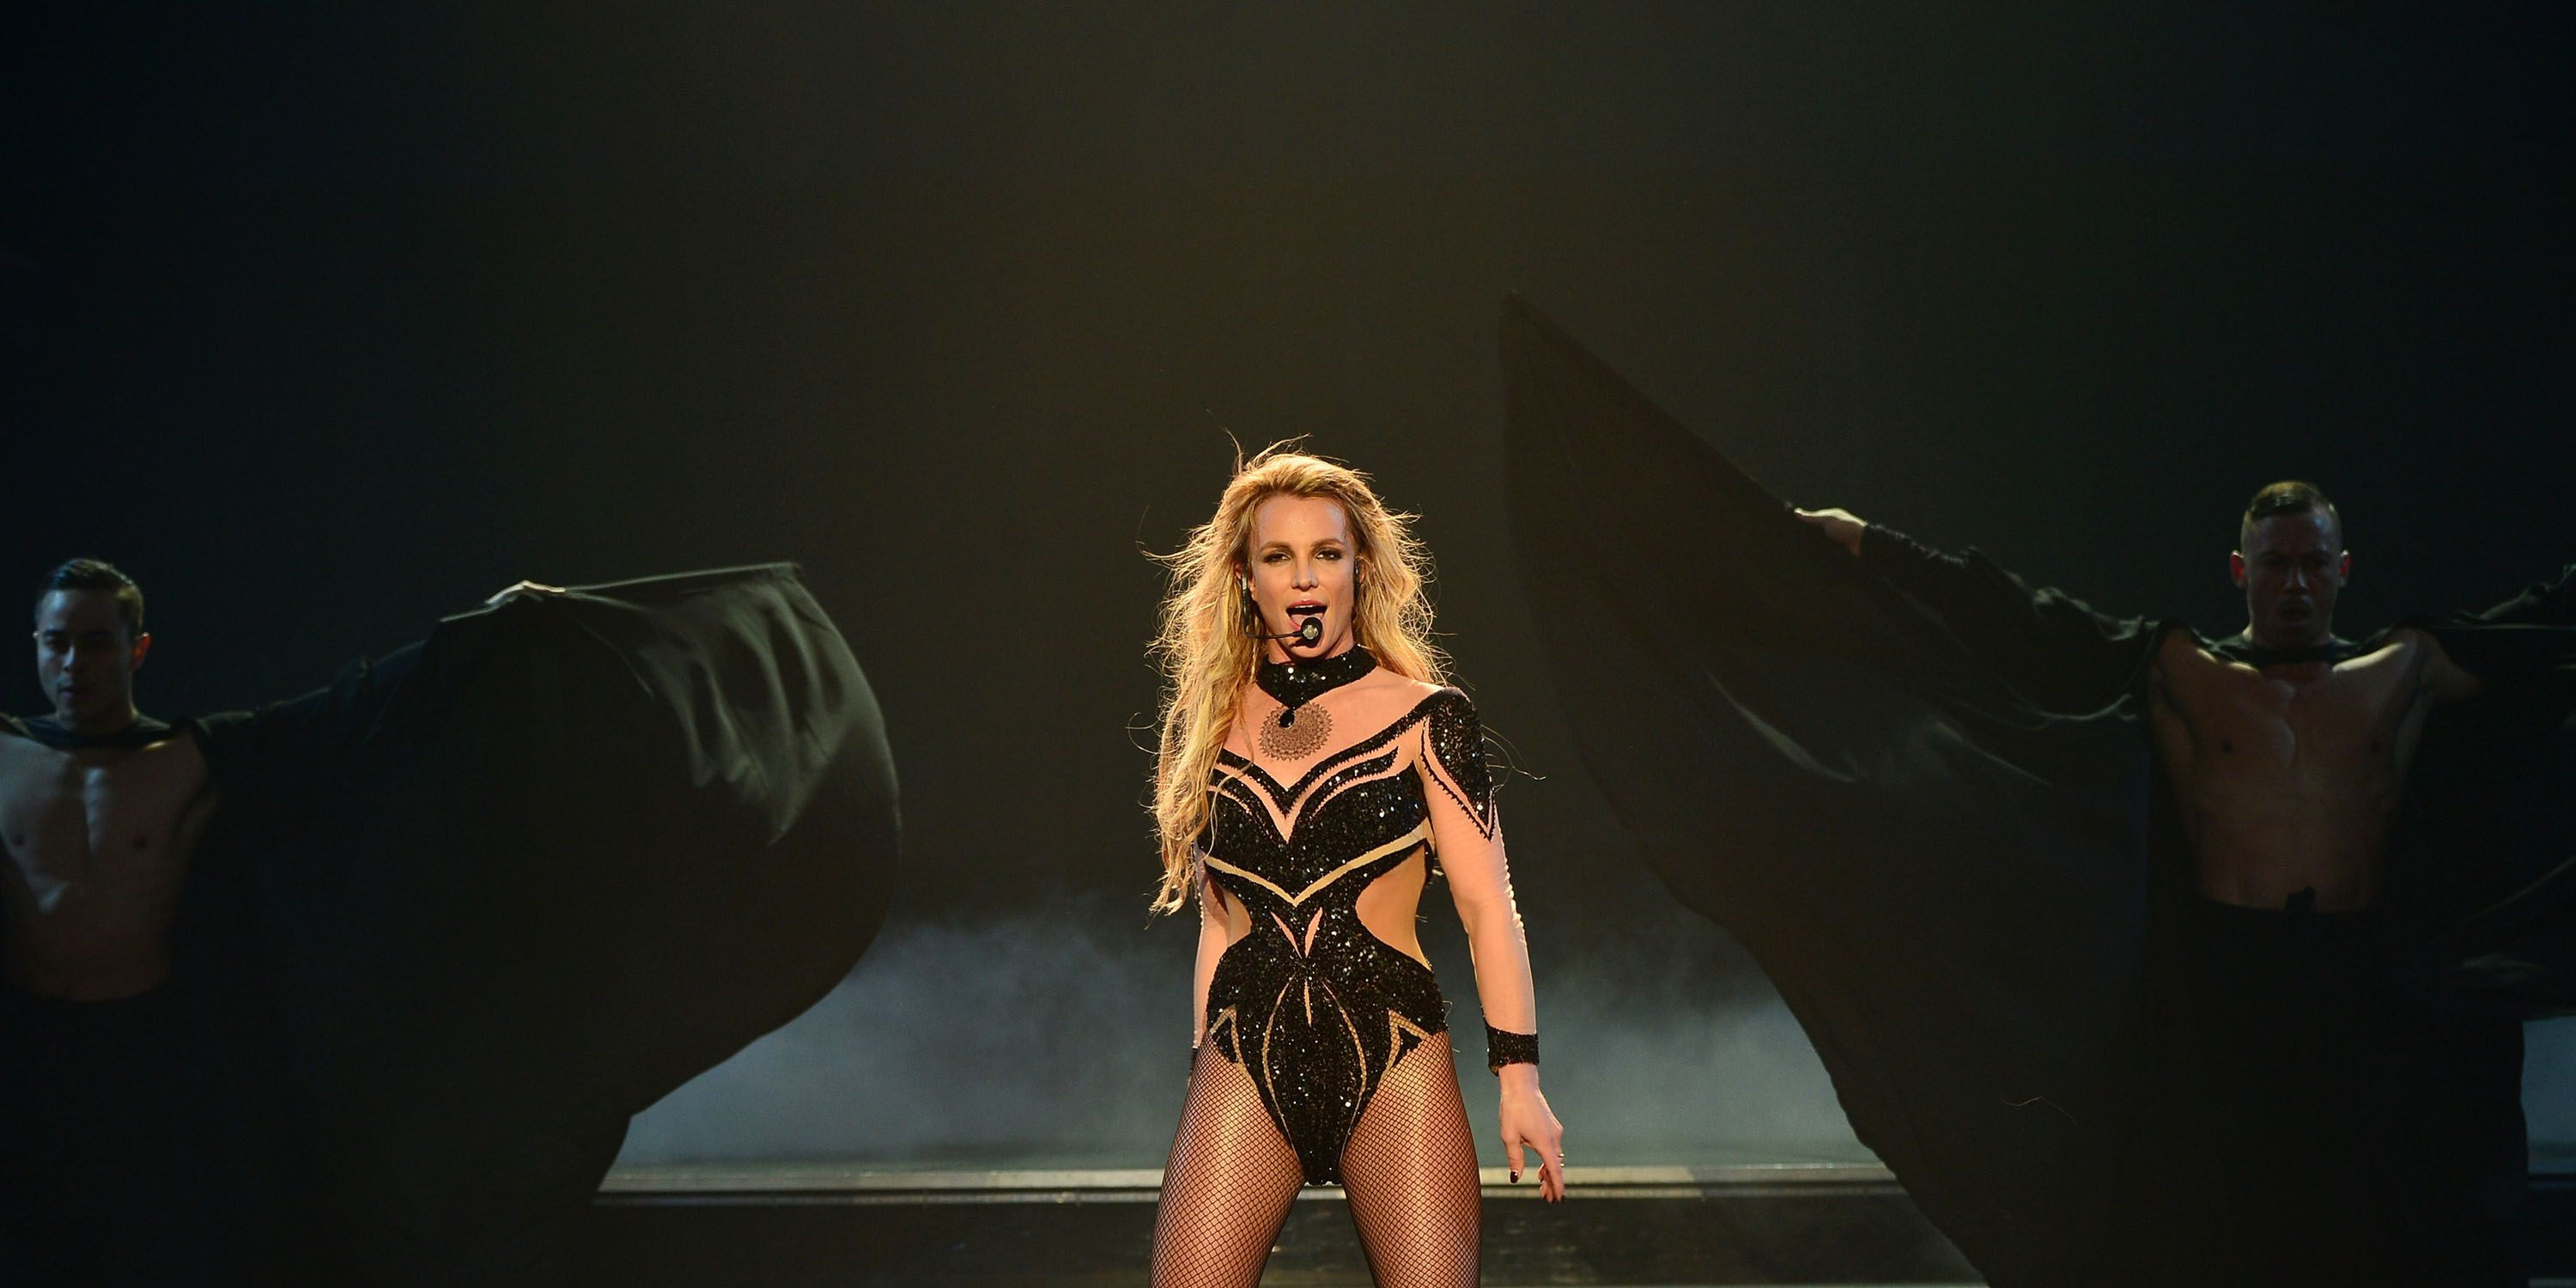 LAS VEGAS, NV - FEBRUARY 26: (EXCLUSIVE COVERAGE) Britney Spears performs Britney Spears: Piece of Me Remixed. Reimagined. Still iconic. At Planet Hollywood Resort & Casino on February 26, 2016 in Las Vegas, Nevada.